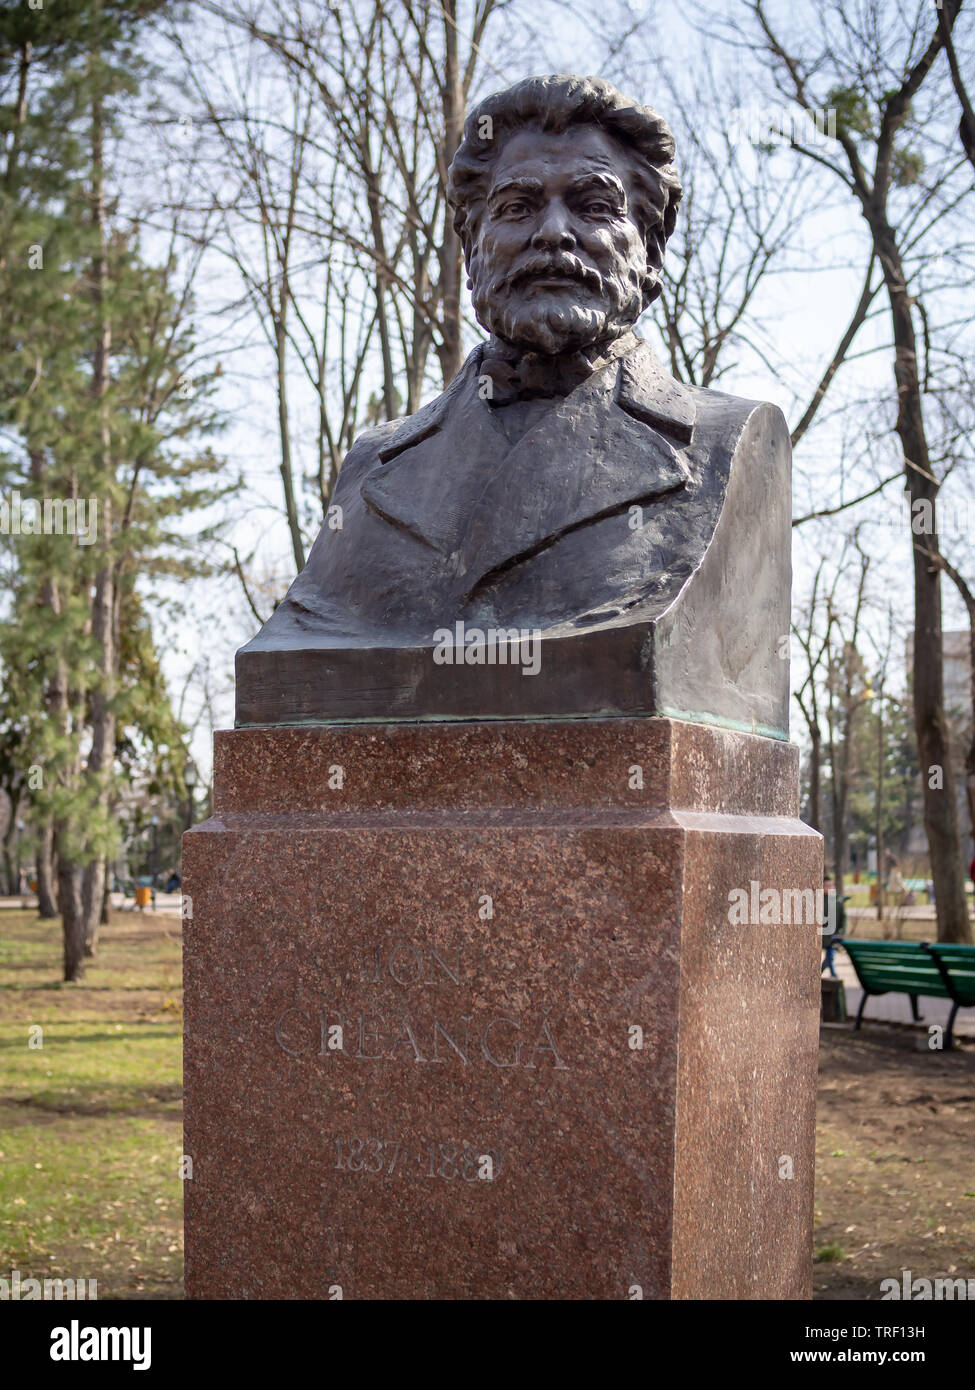 CHISINAU, MOLDOVA-MARCH 21, 2019:  Ion Creanga bust by Lev Averbuh the in Alley of Classics - Stock Image